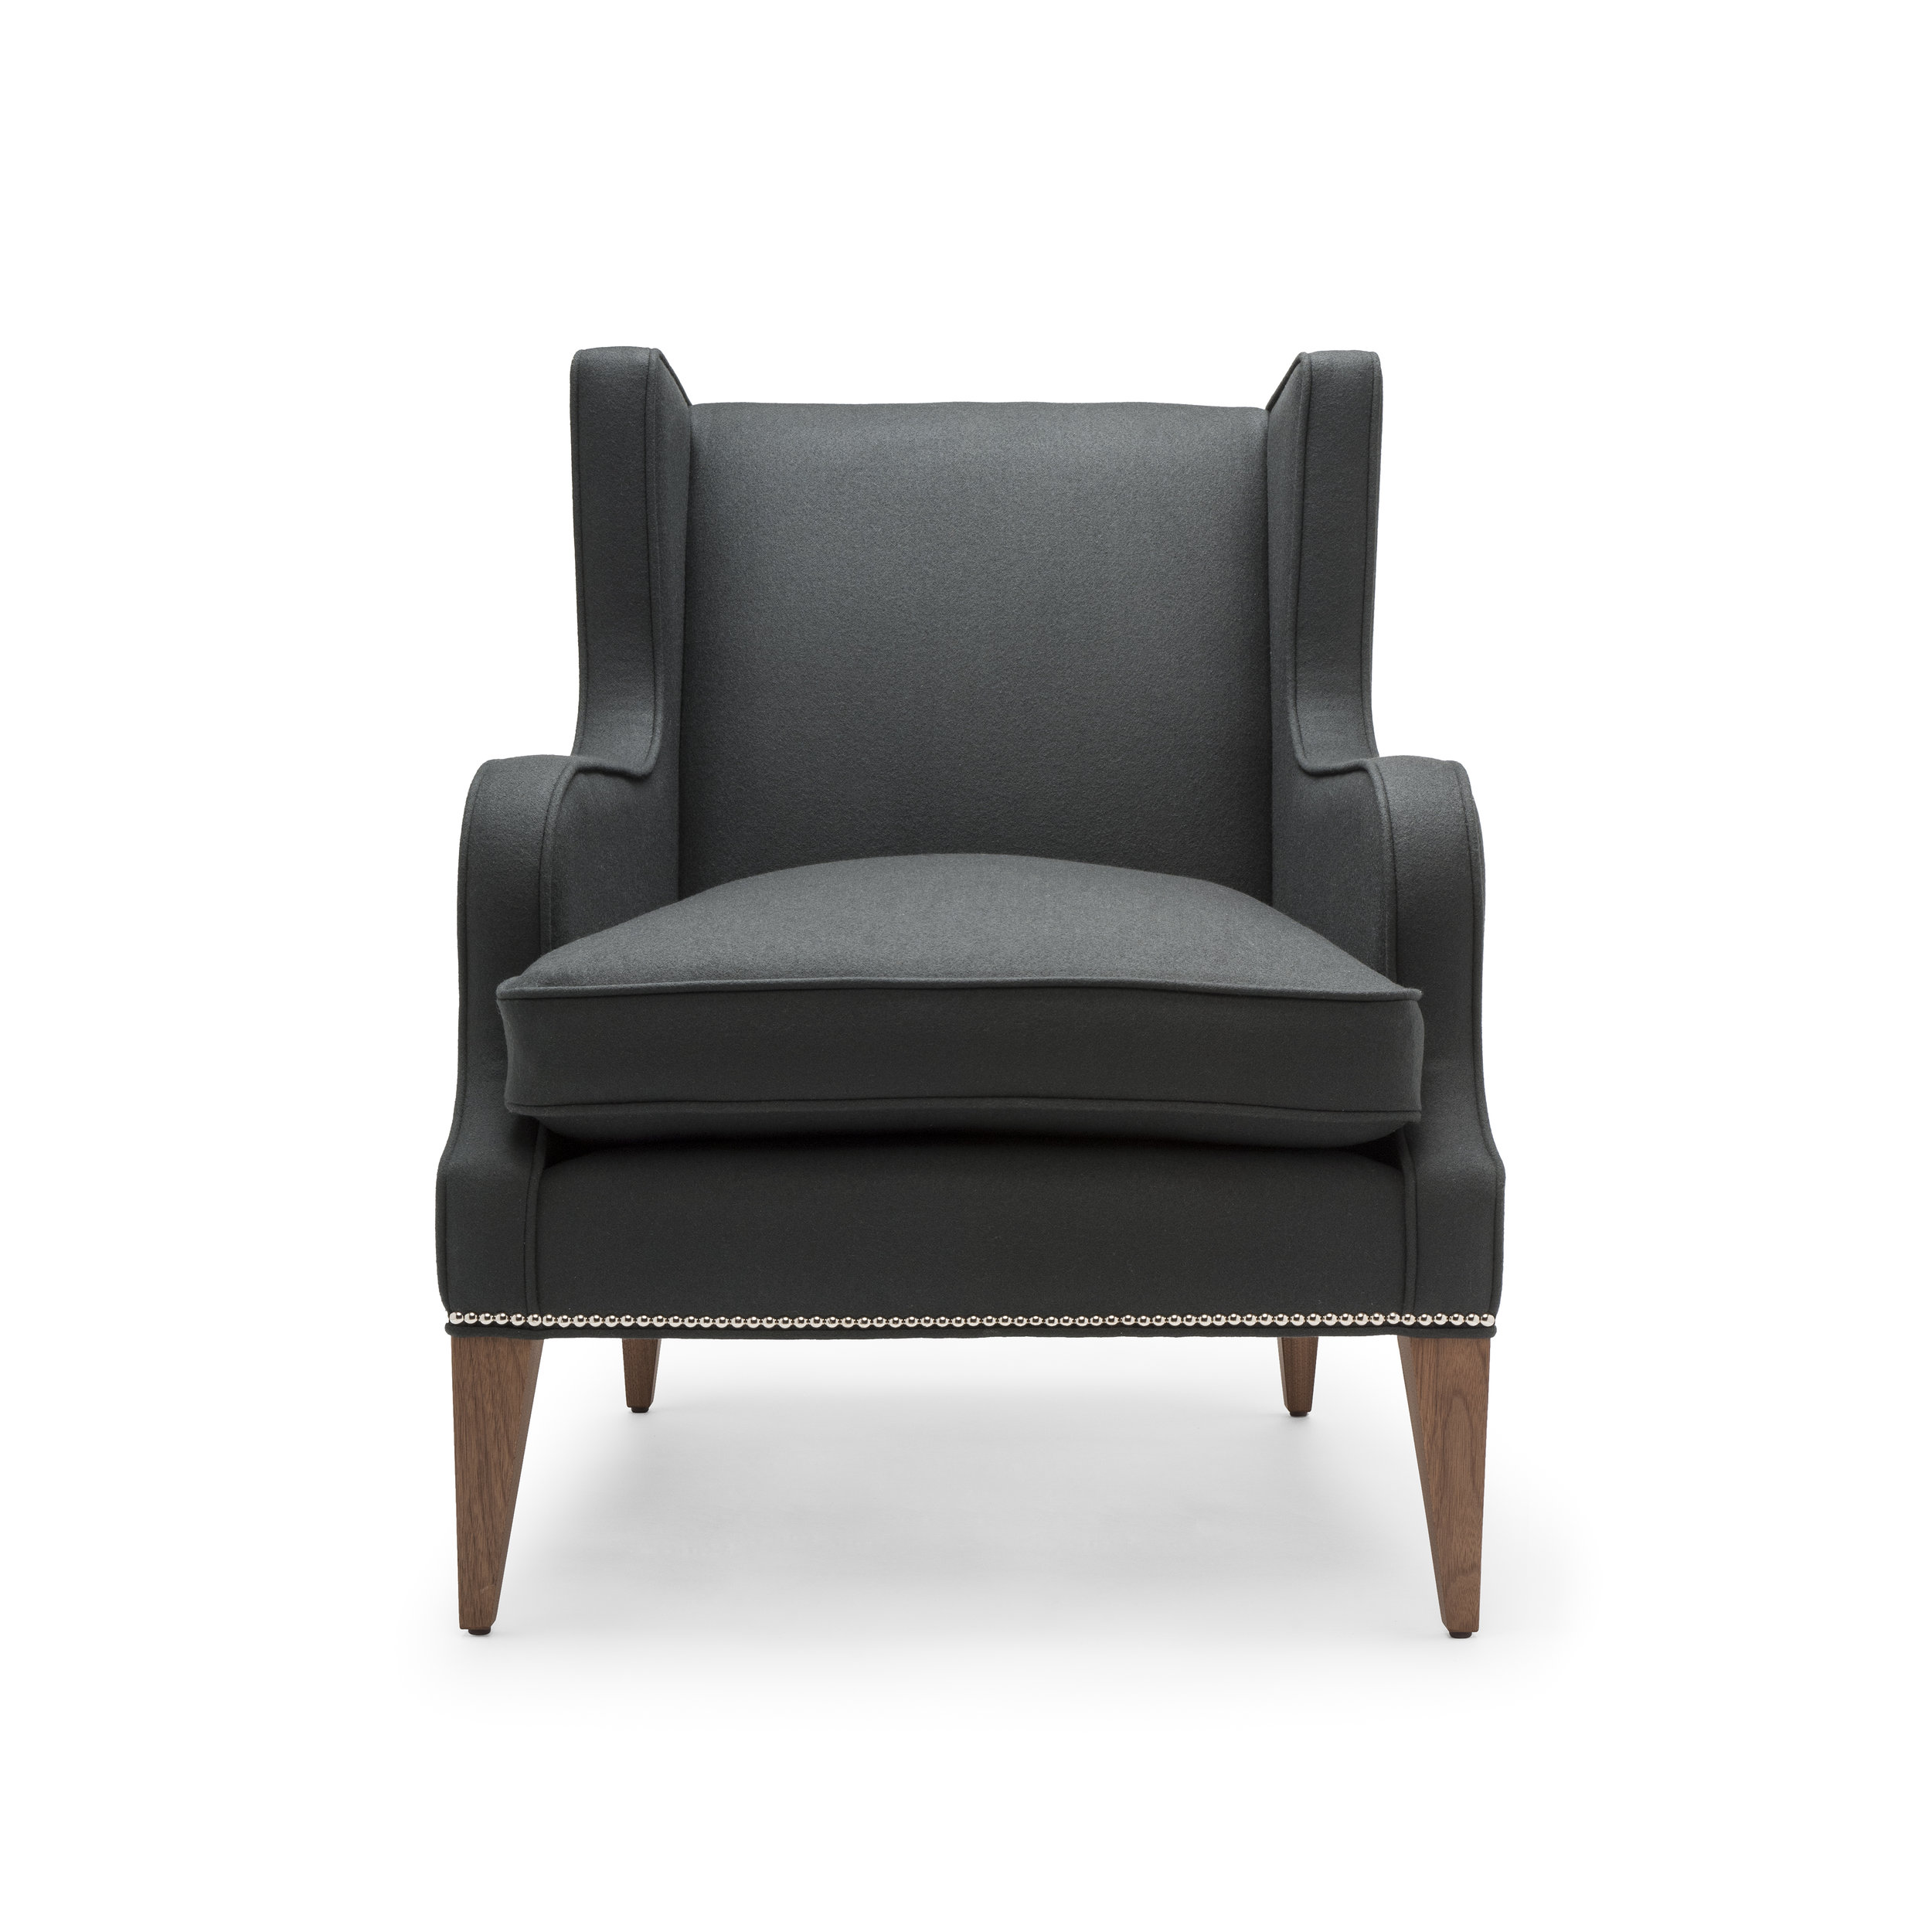 the alae lounge chair - The Alae lounge chair features sleek sculptural lines. The seat is softened perfectly with a luxurious feather and down wrapped cushion. Upholstered in charcoal wool (100% British), with legs in natural oiled walnut and decorative nails in polished nickel. ♦ Construction: solid beech frame, sprung seat and webbed back with a feather and down wrapped seat cushion.♦ Height: 88cm | Width: 70cm | Depth: 91cm | Seat Height: 45cm♦ Hand Signed No. 399Trade Price: £1,350 + vatQty:1